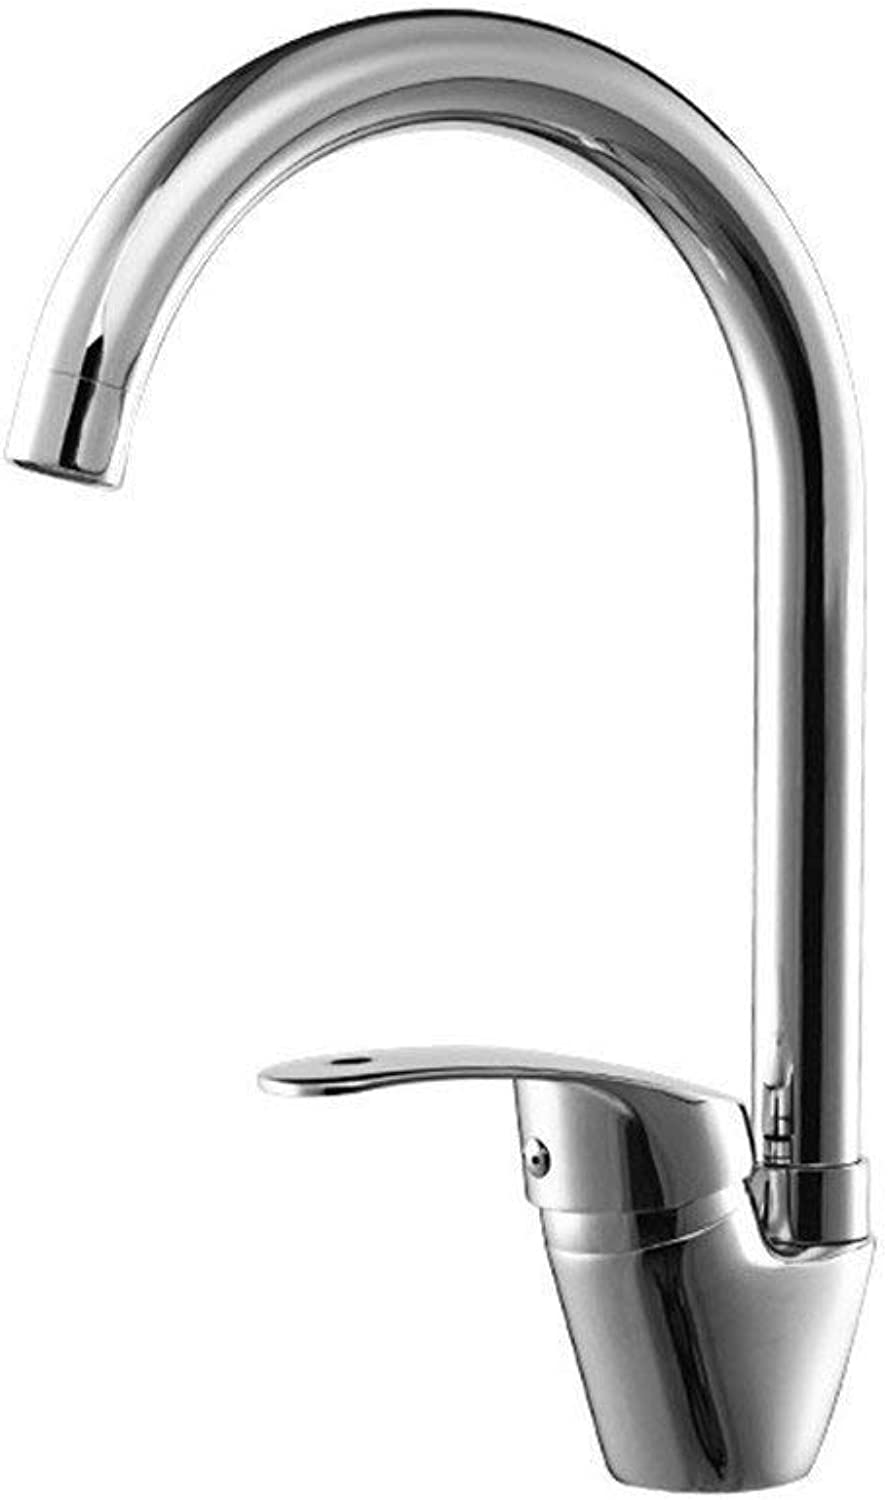 Oudan All Copper Kitchen Faucet Faucet Kitchen Wash Water Faucet (color   -, Size   -)